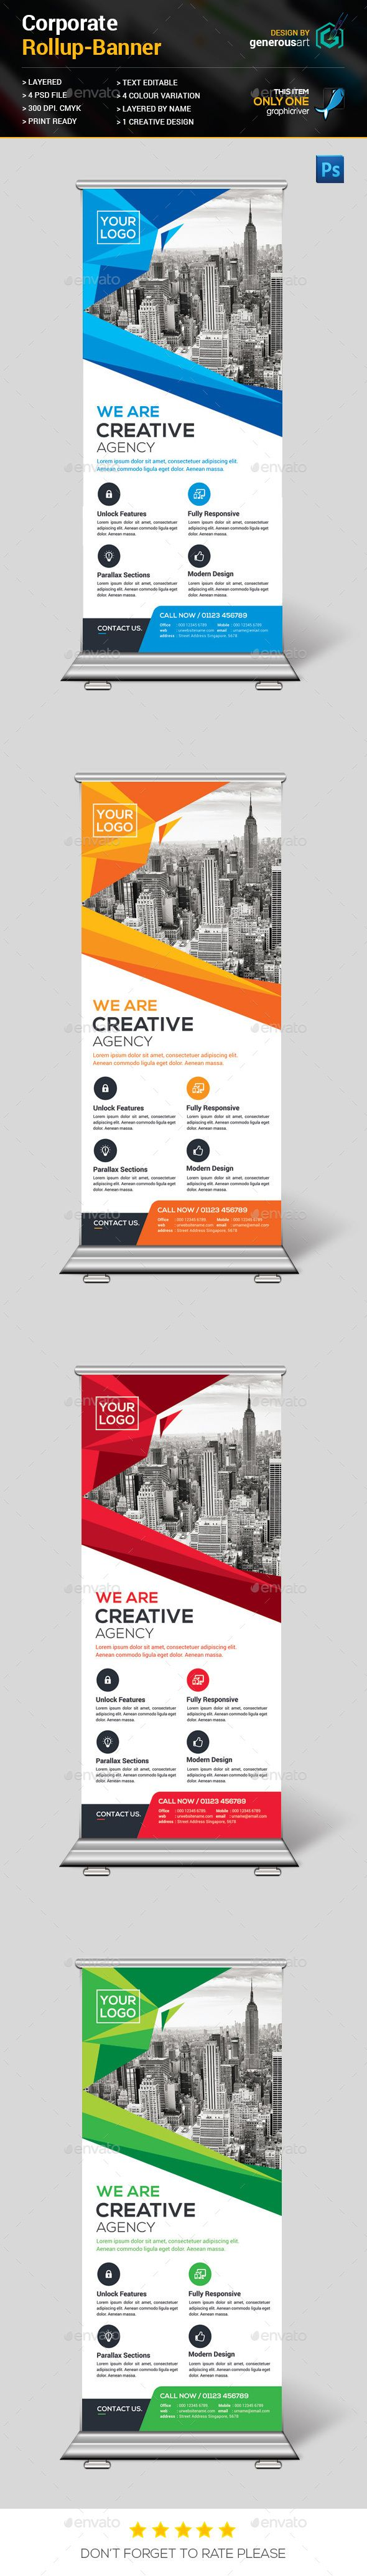 Corporate Rollup Banner Template PSD #design Download: http://graphicriver.net/item/corporate-rollup-banner/13386736?ref=ksioks